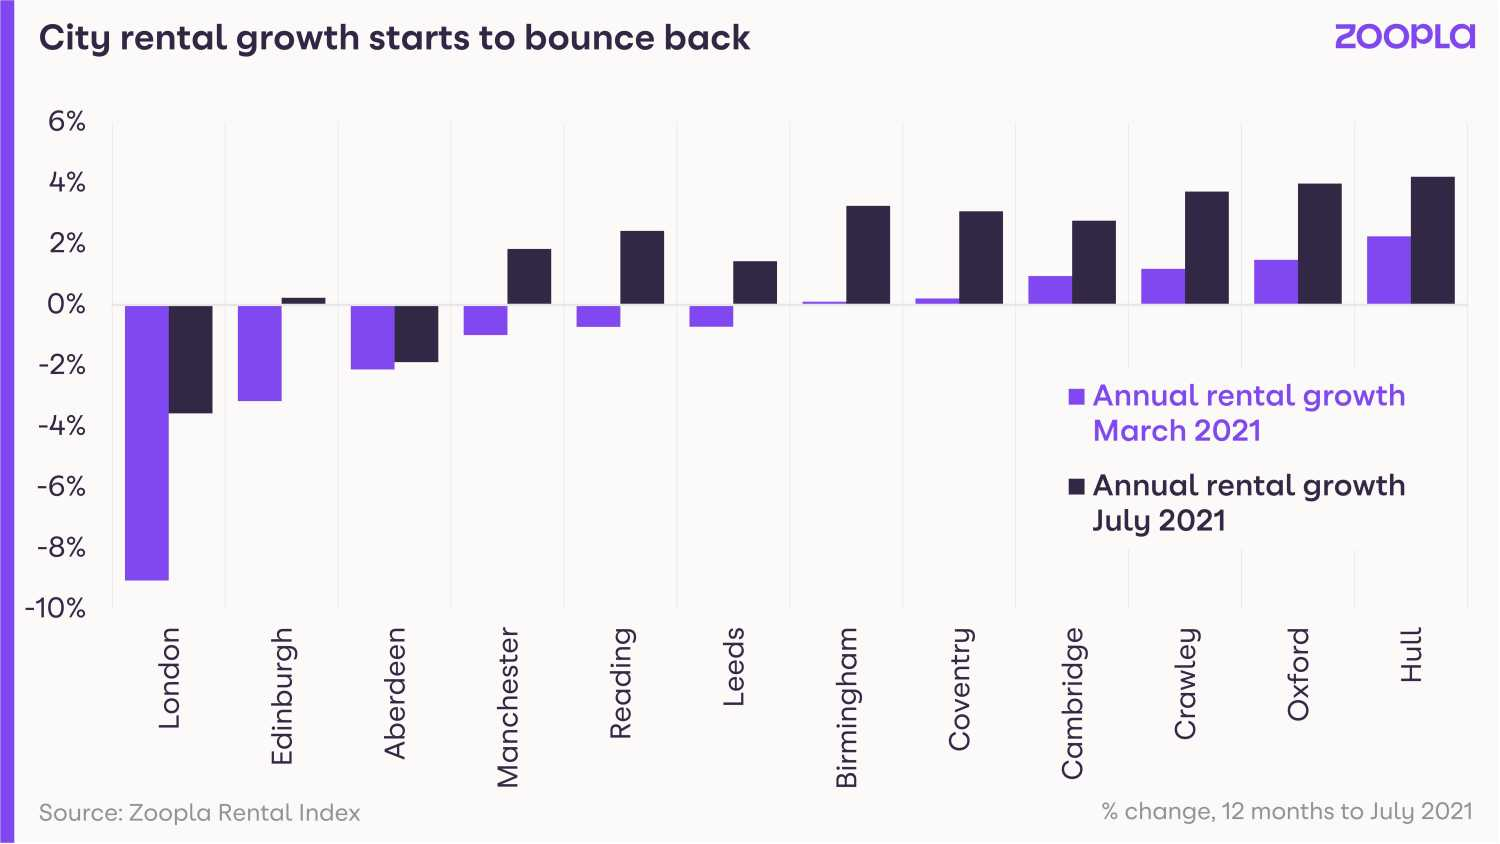 Graph shows city rental growth starting to bounce back